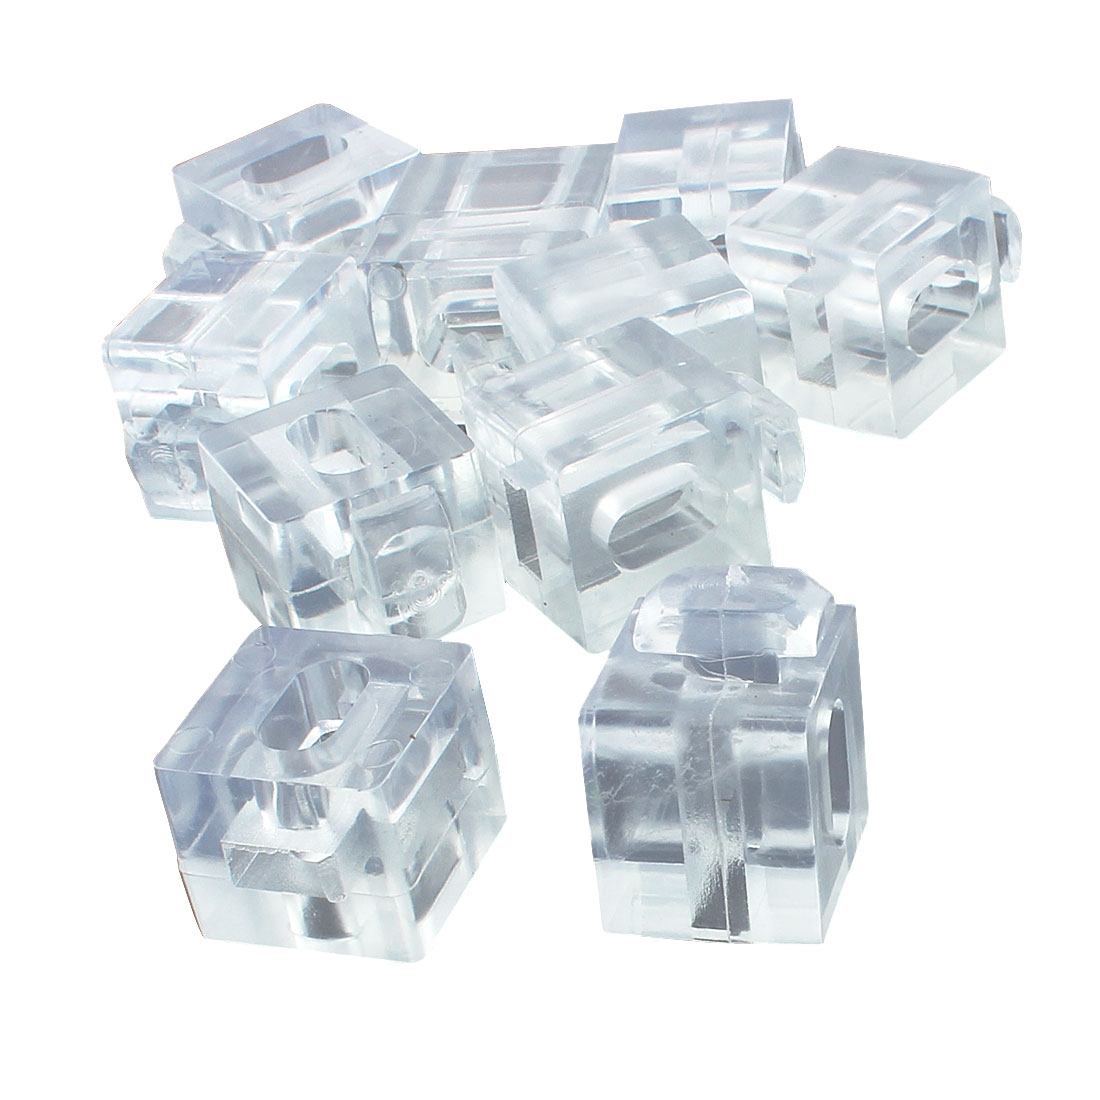 Aluminum Profile 30 Series Spacer Fastener Organic Glass Connector Block Clear 10pcs